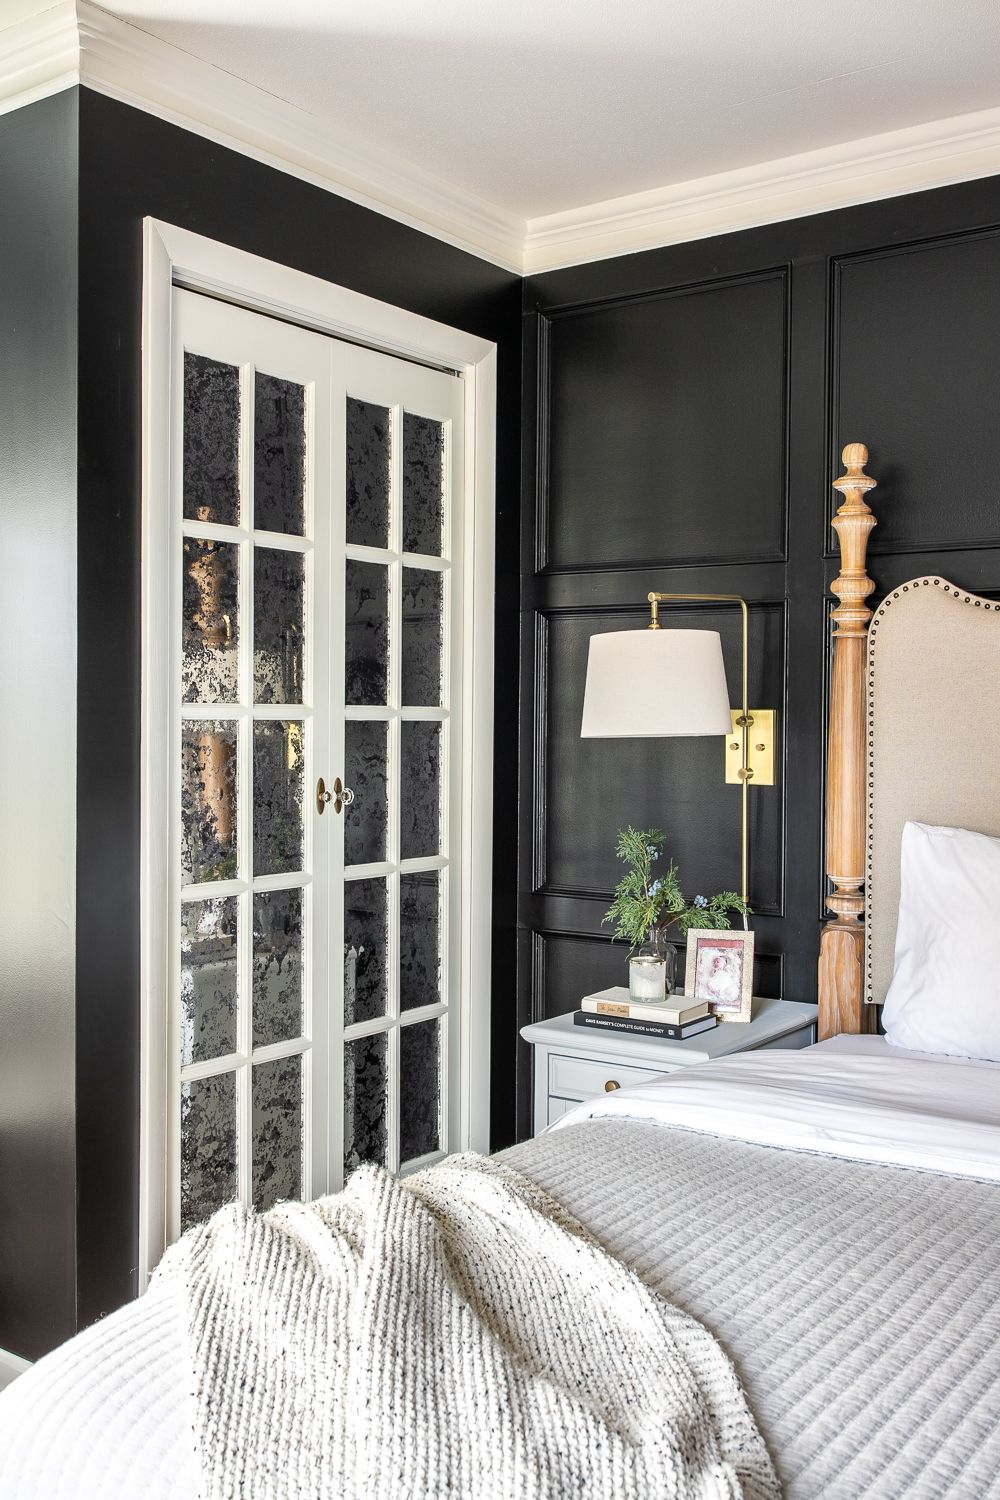 Mirrored French Closet Doors How We Created A Vintage Style Glamorous Solution For Our Bifold French Closet Doors Master Bedroom Update French Doors Bedroom